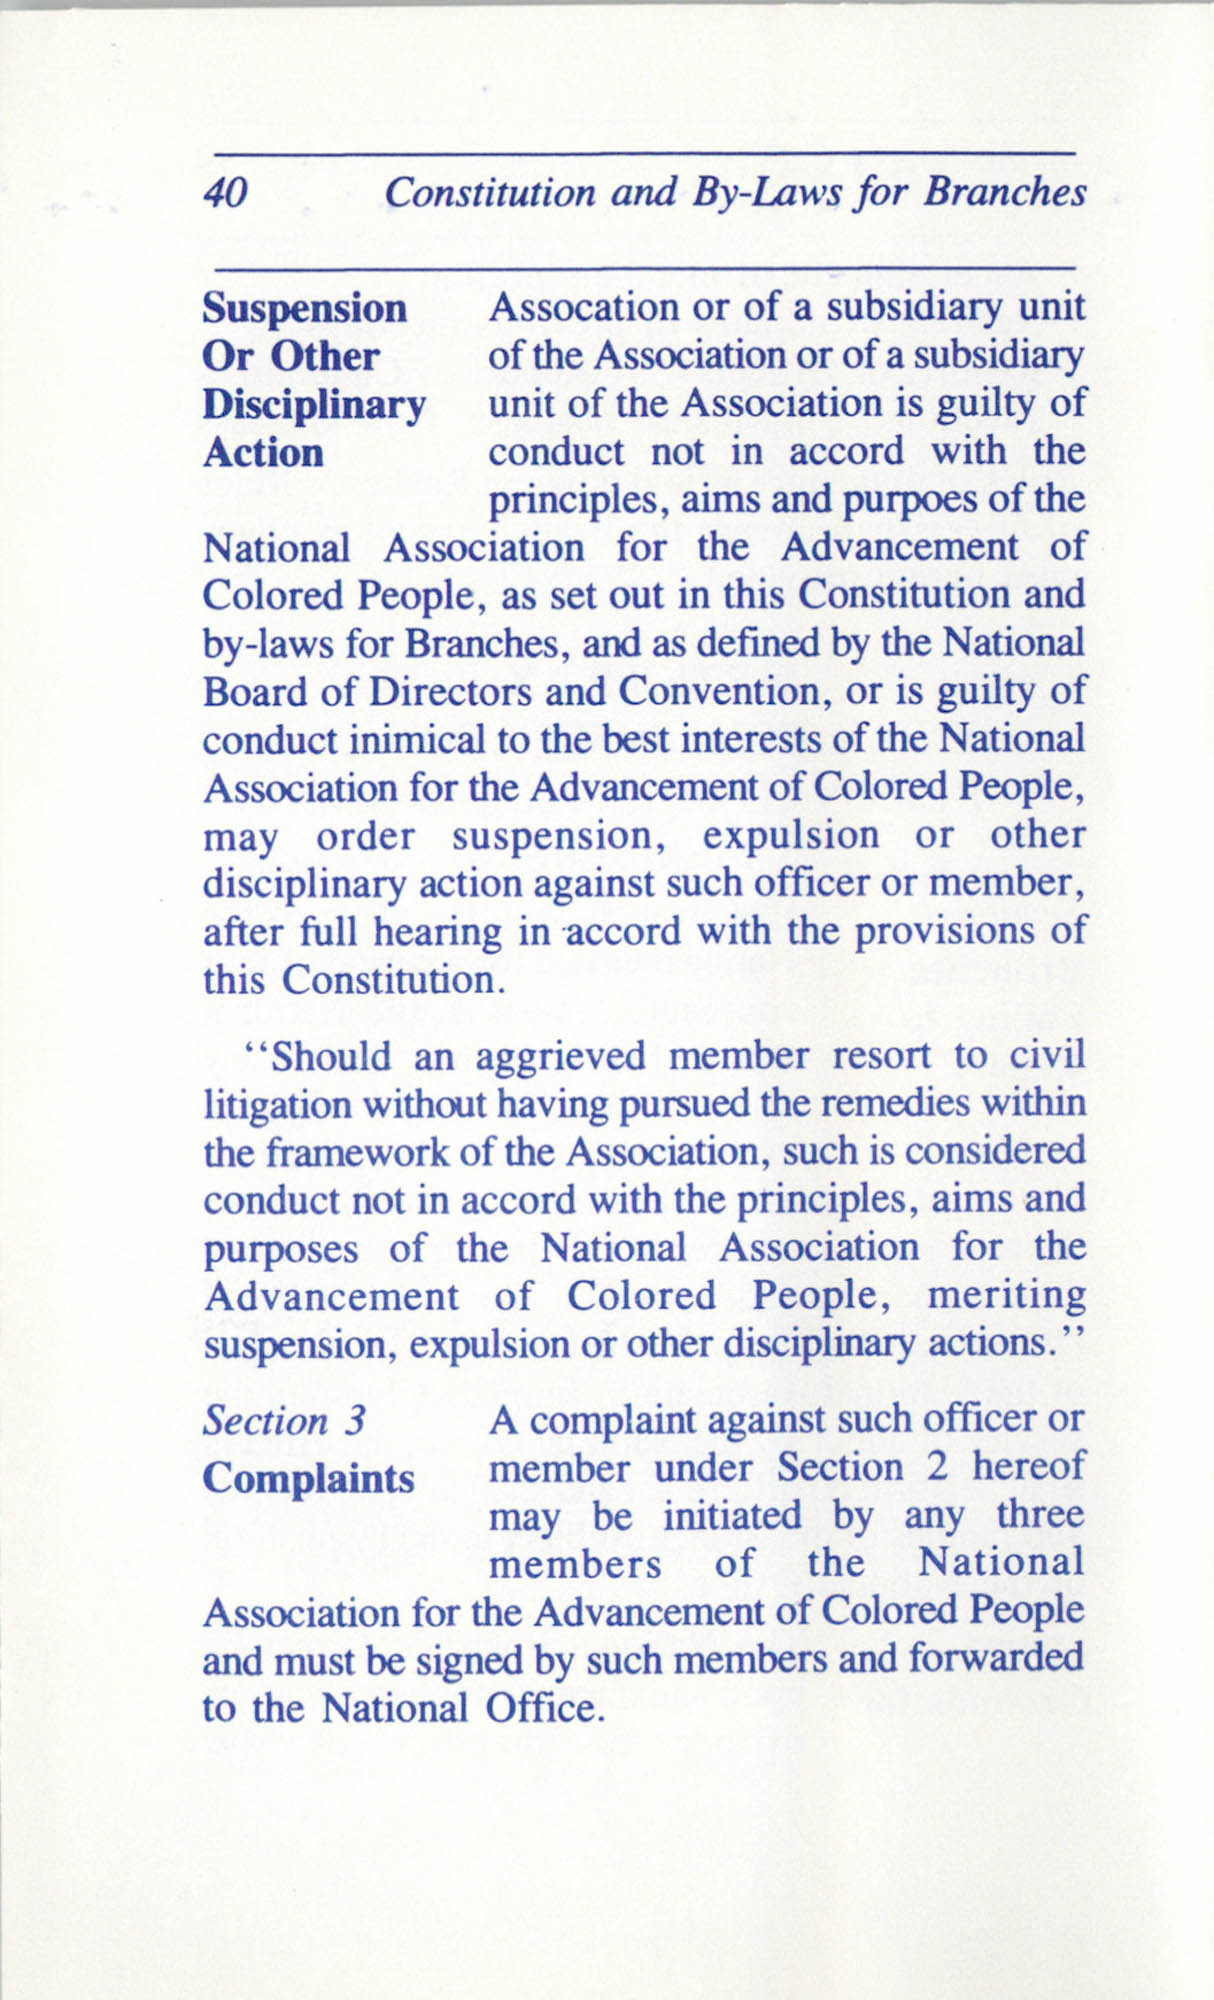 Constitution and By-Laws for Branches of the NAACP, June 1993, Page 40